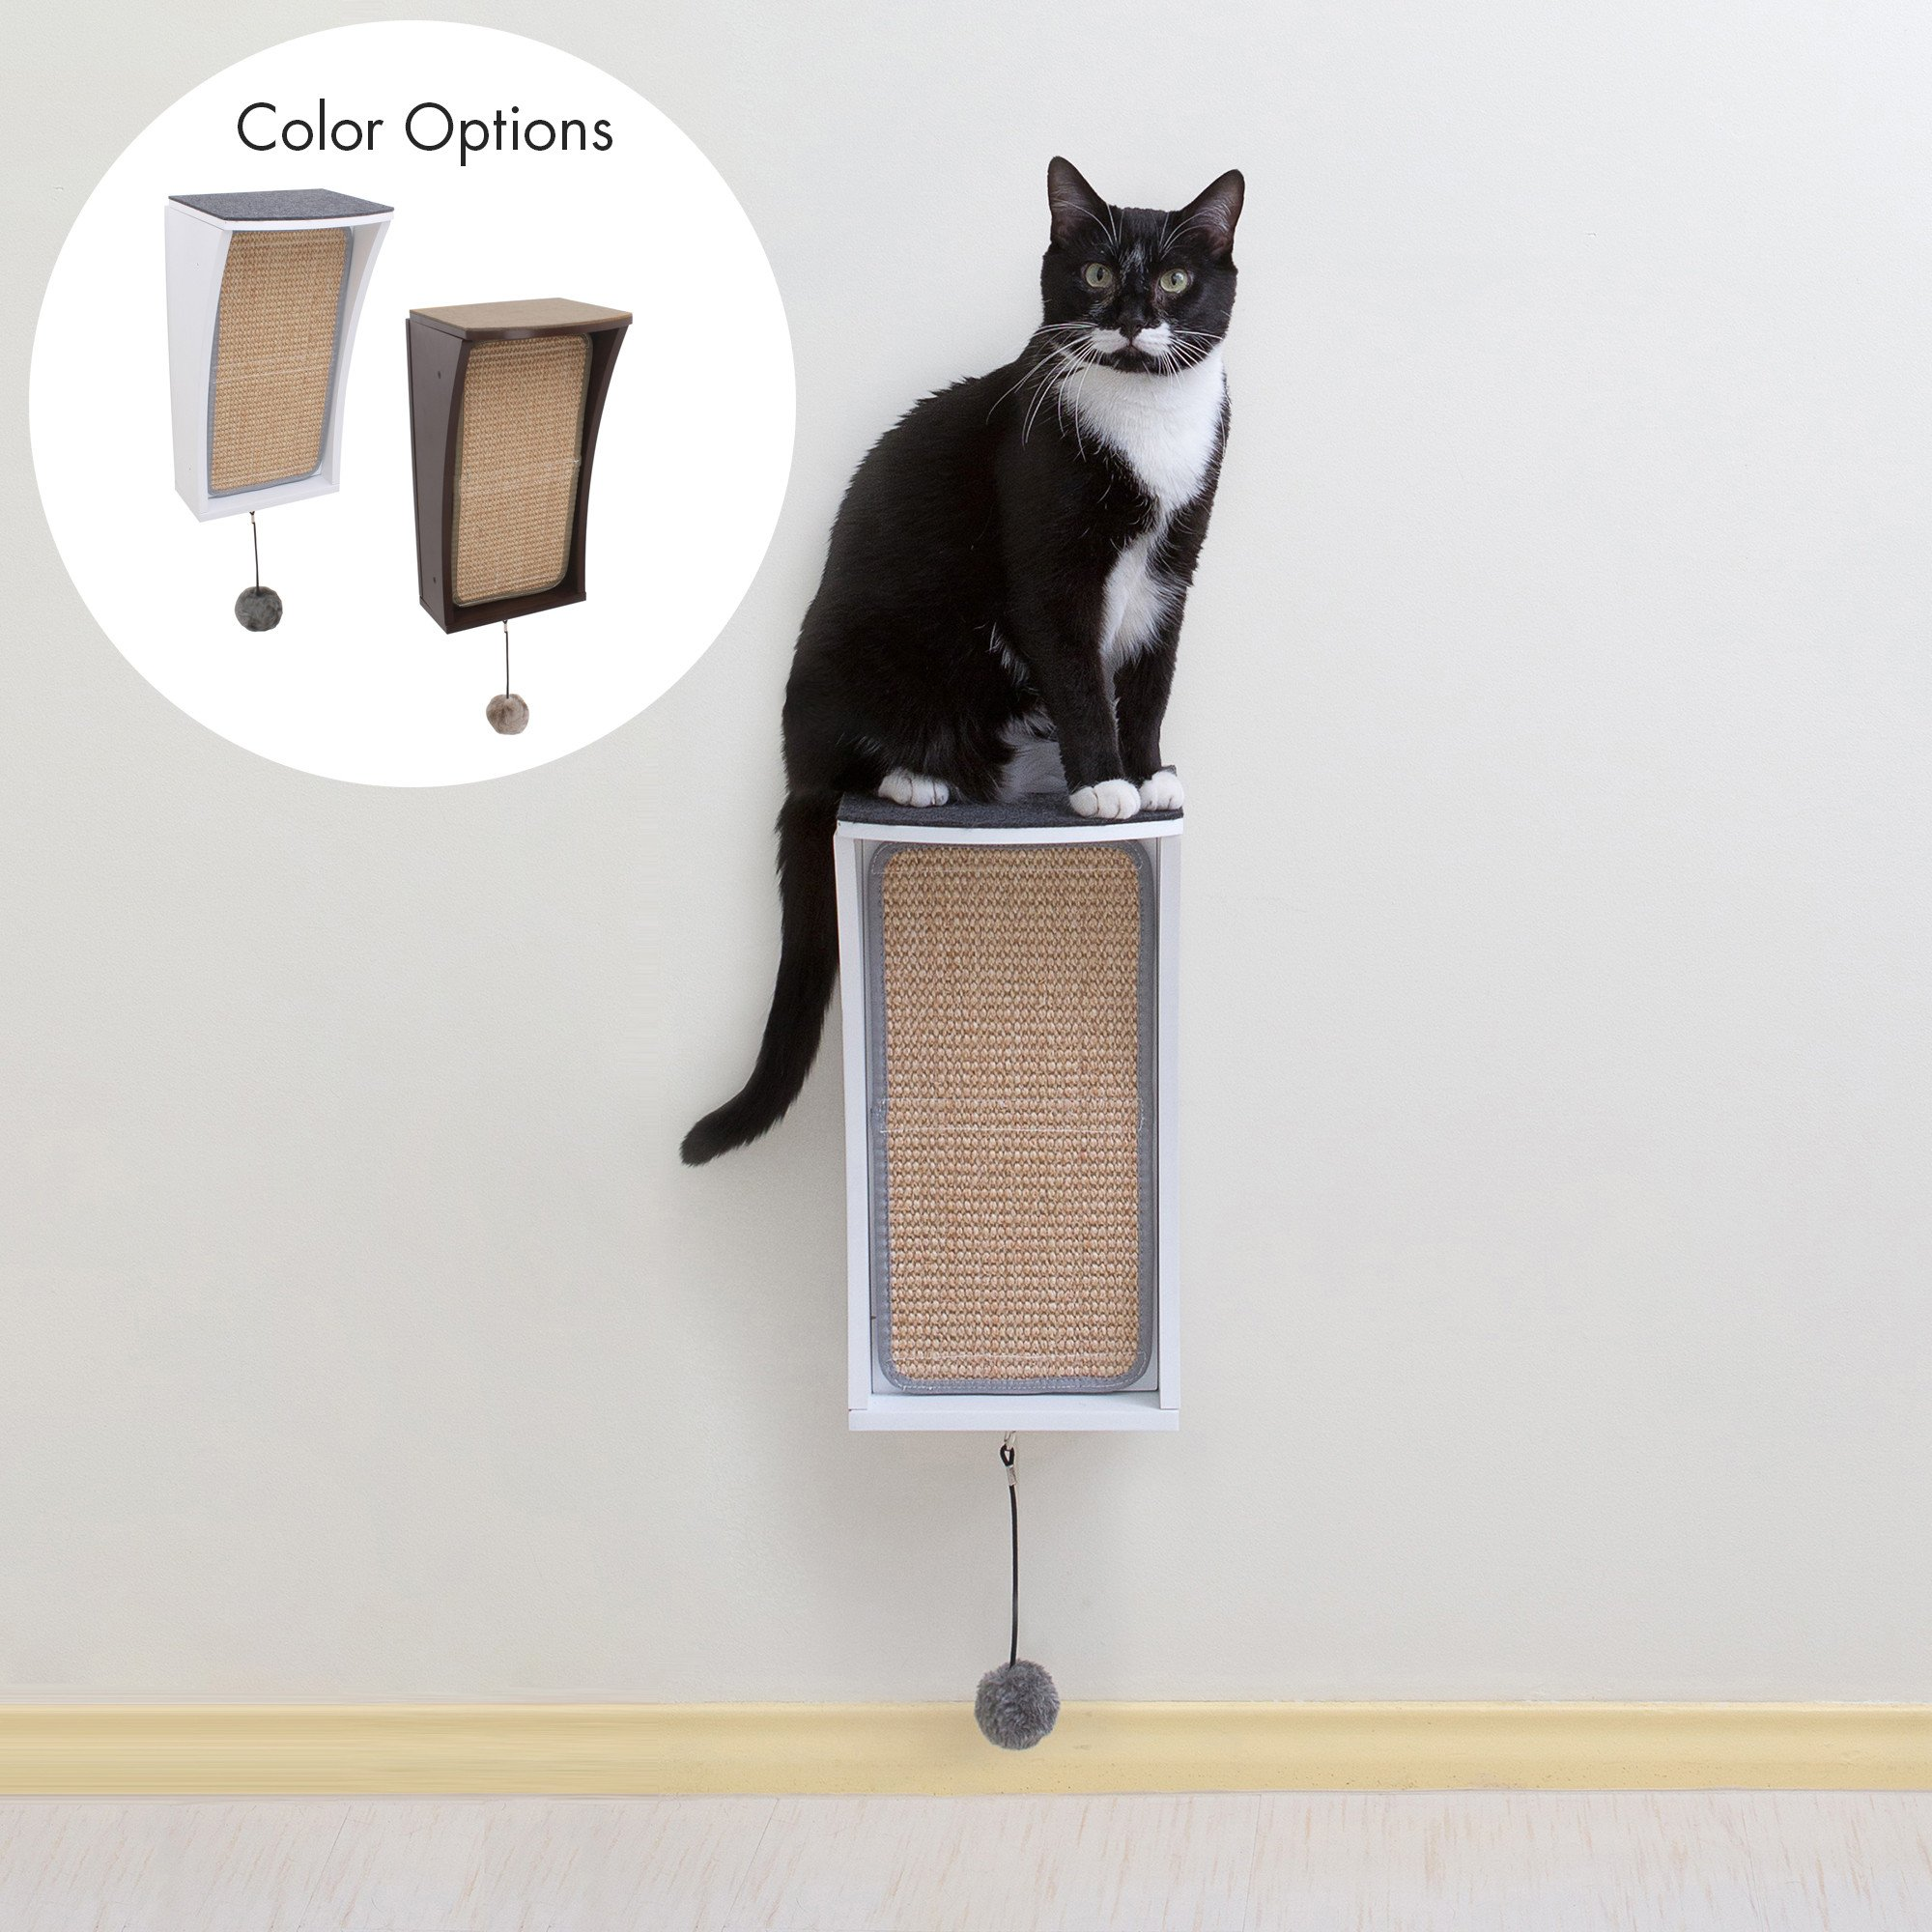 Hauspanther CATchall Wall-mounted Cat Scratcher, Perch & Storage by Primetime Petz, $39.99 @hauspanther.com